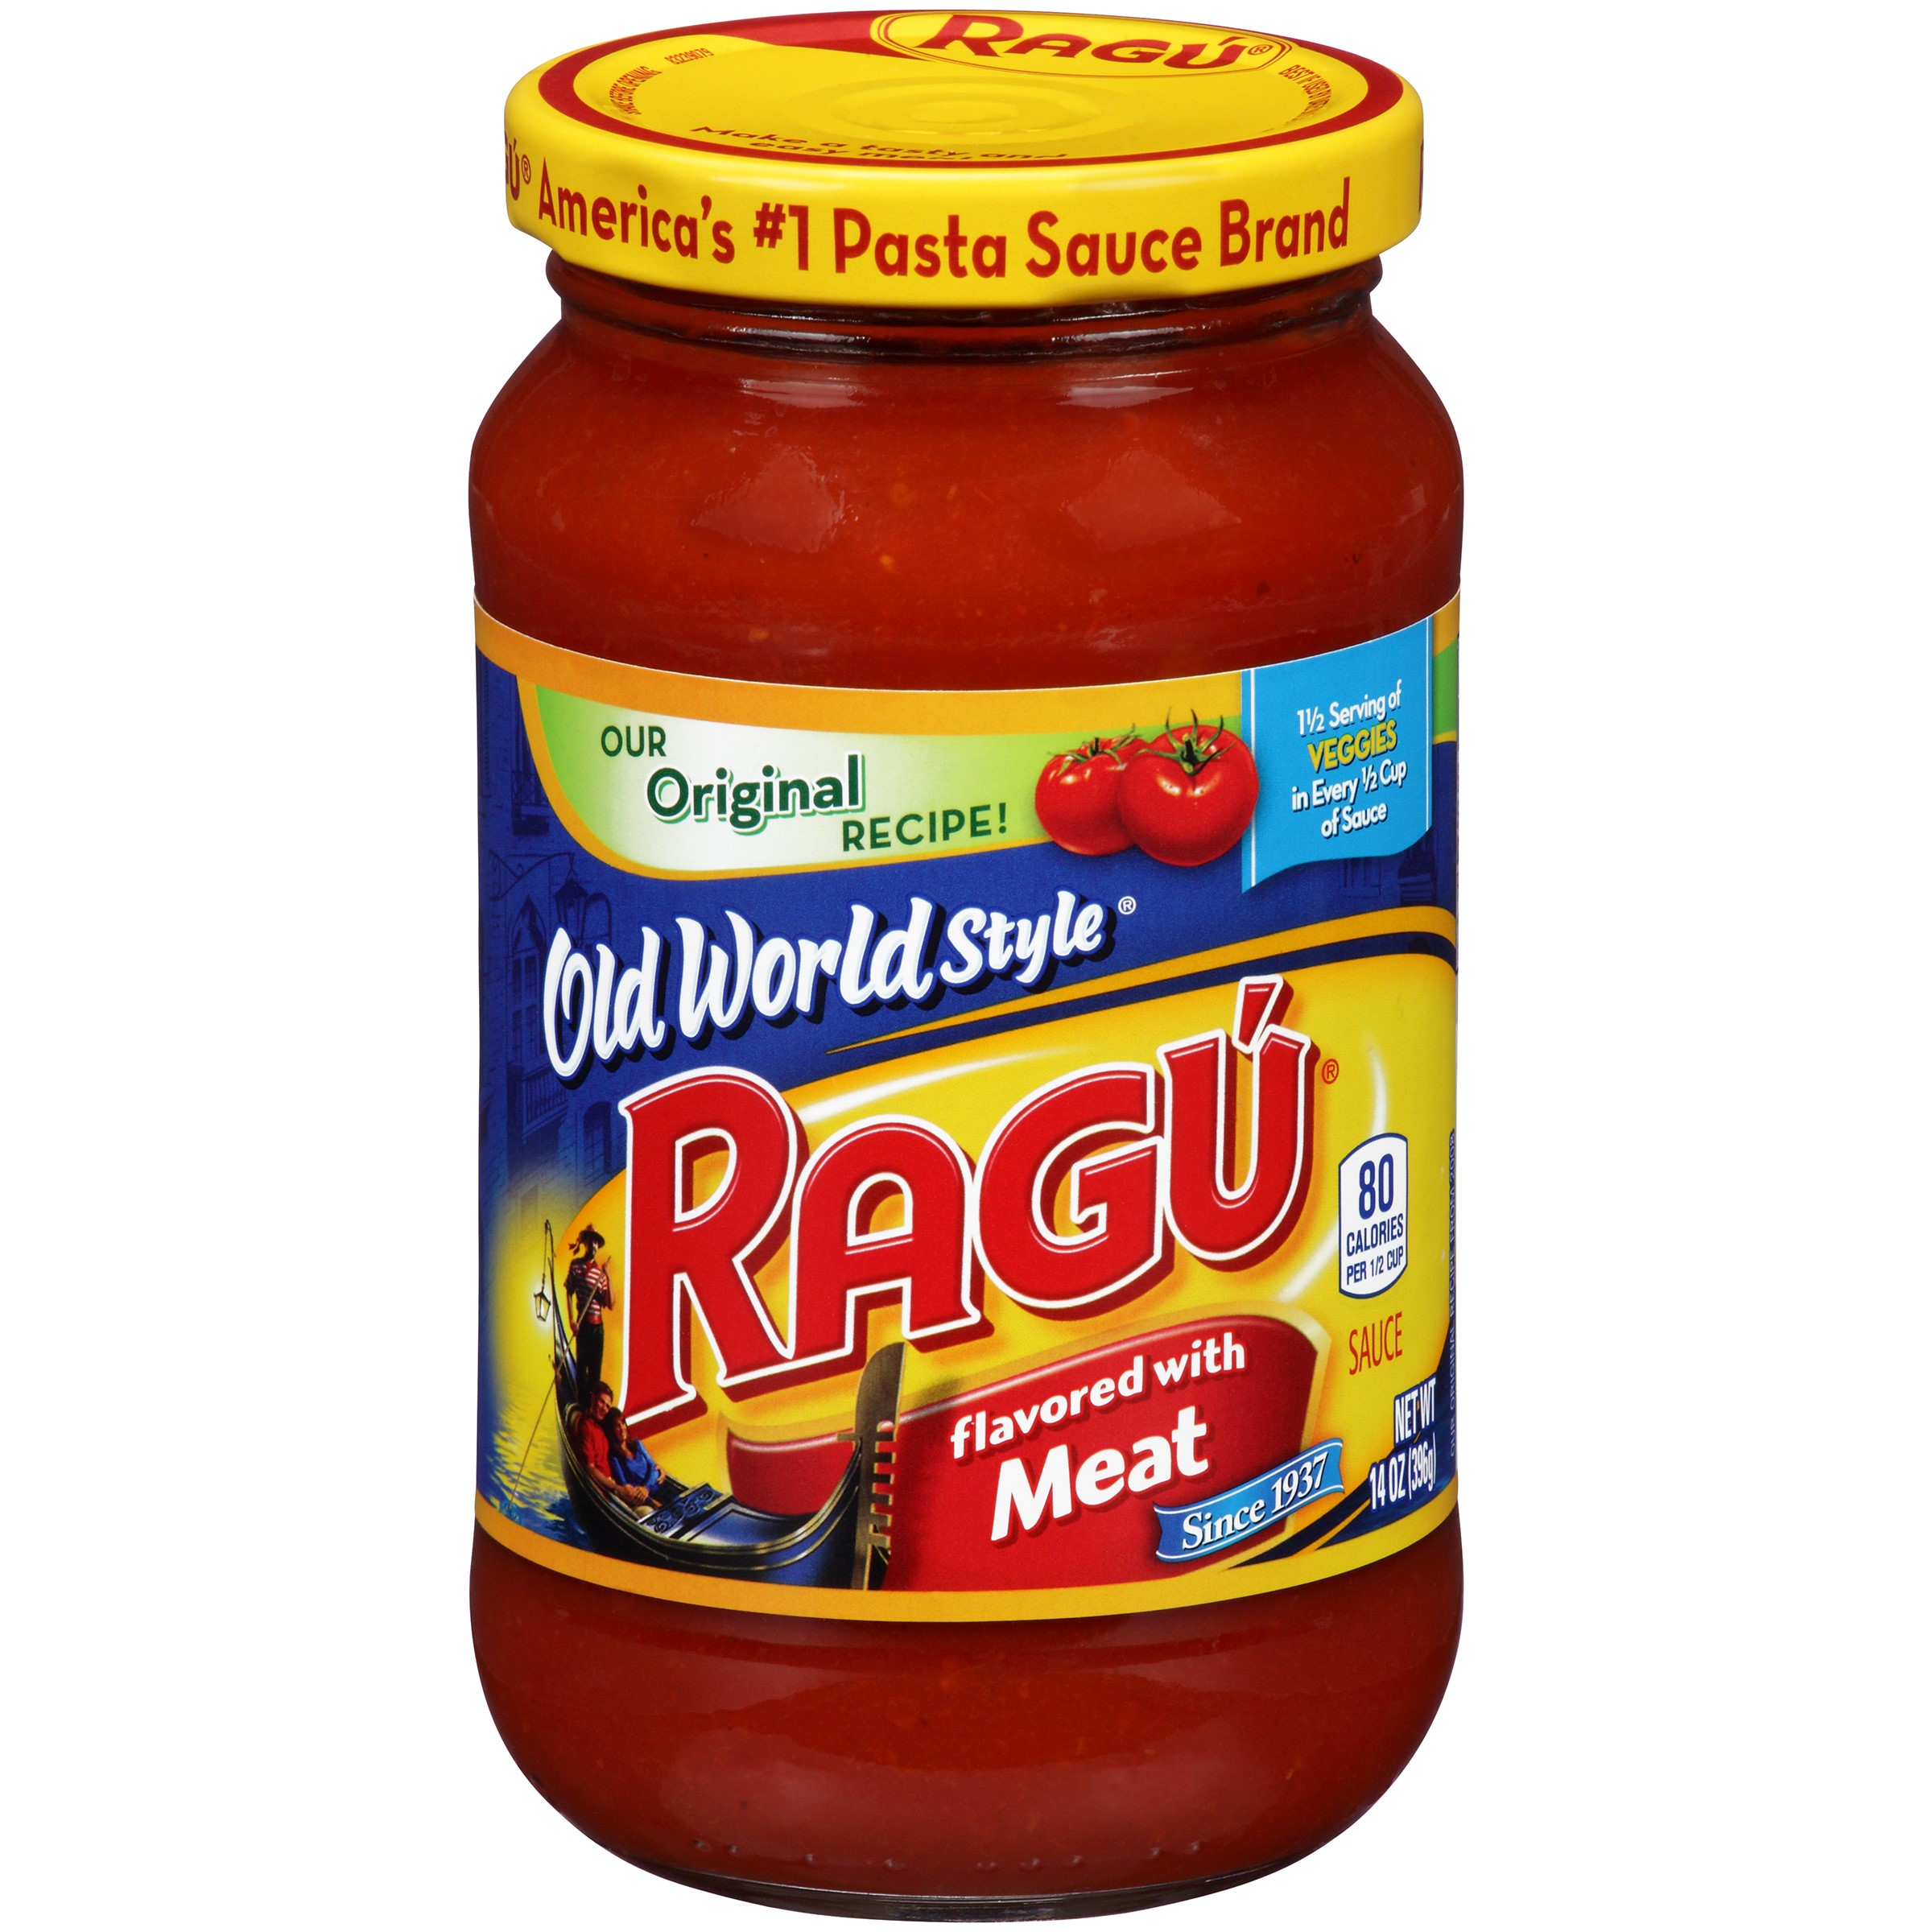 Ragu Old World Style Pasta Sauce, Flavored with Meat, 14 Oz